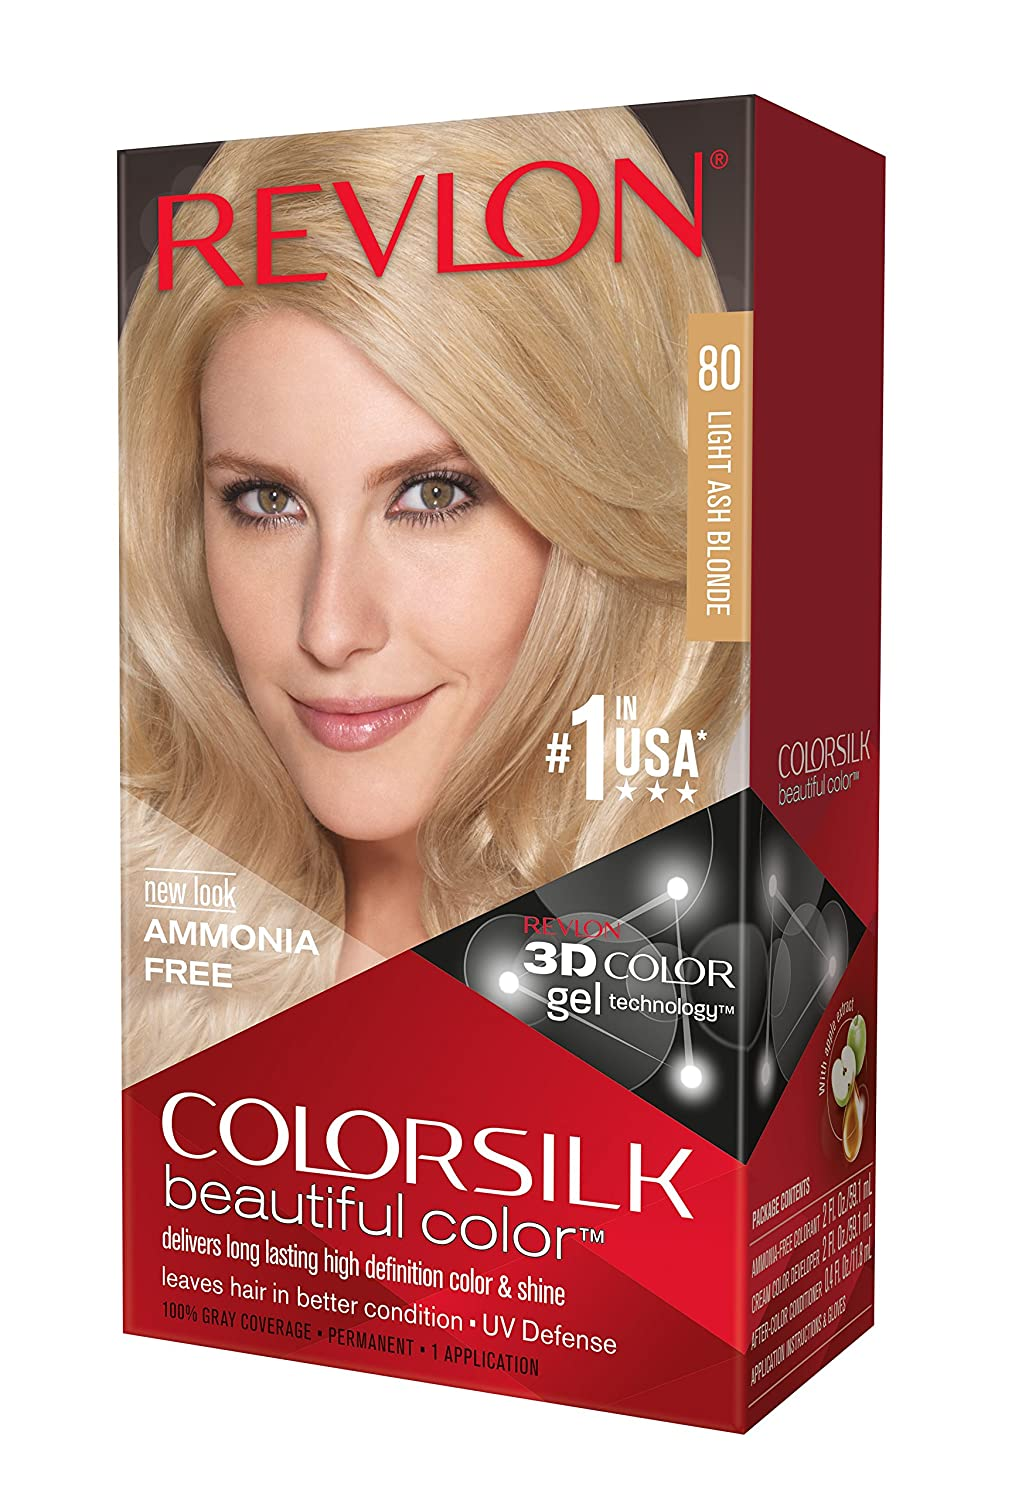 Revlon Medium Ash Blonde Revlon Colorsilk - 1 Application: Amazon ...